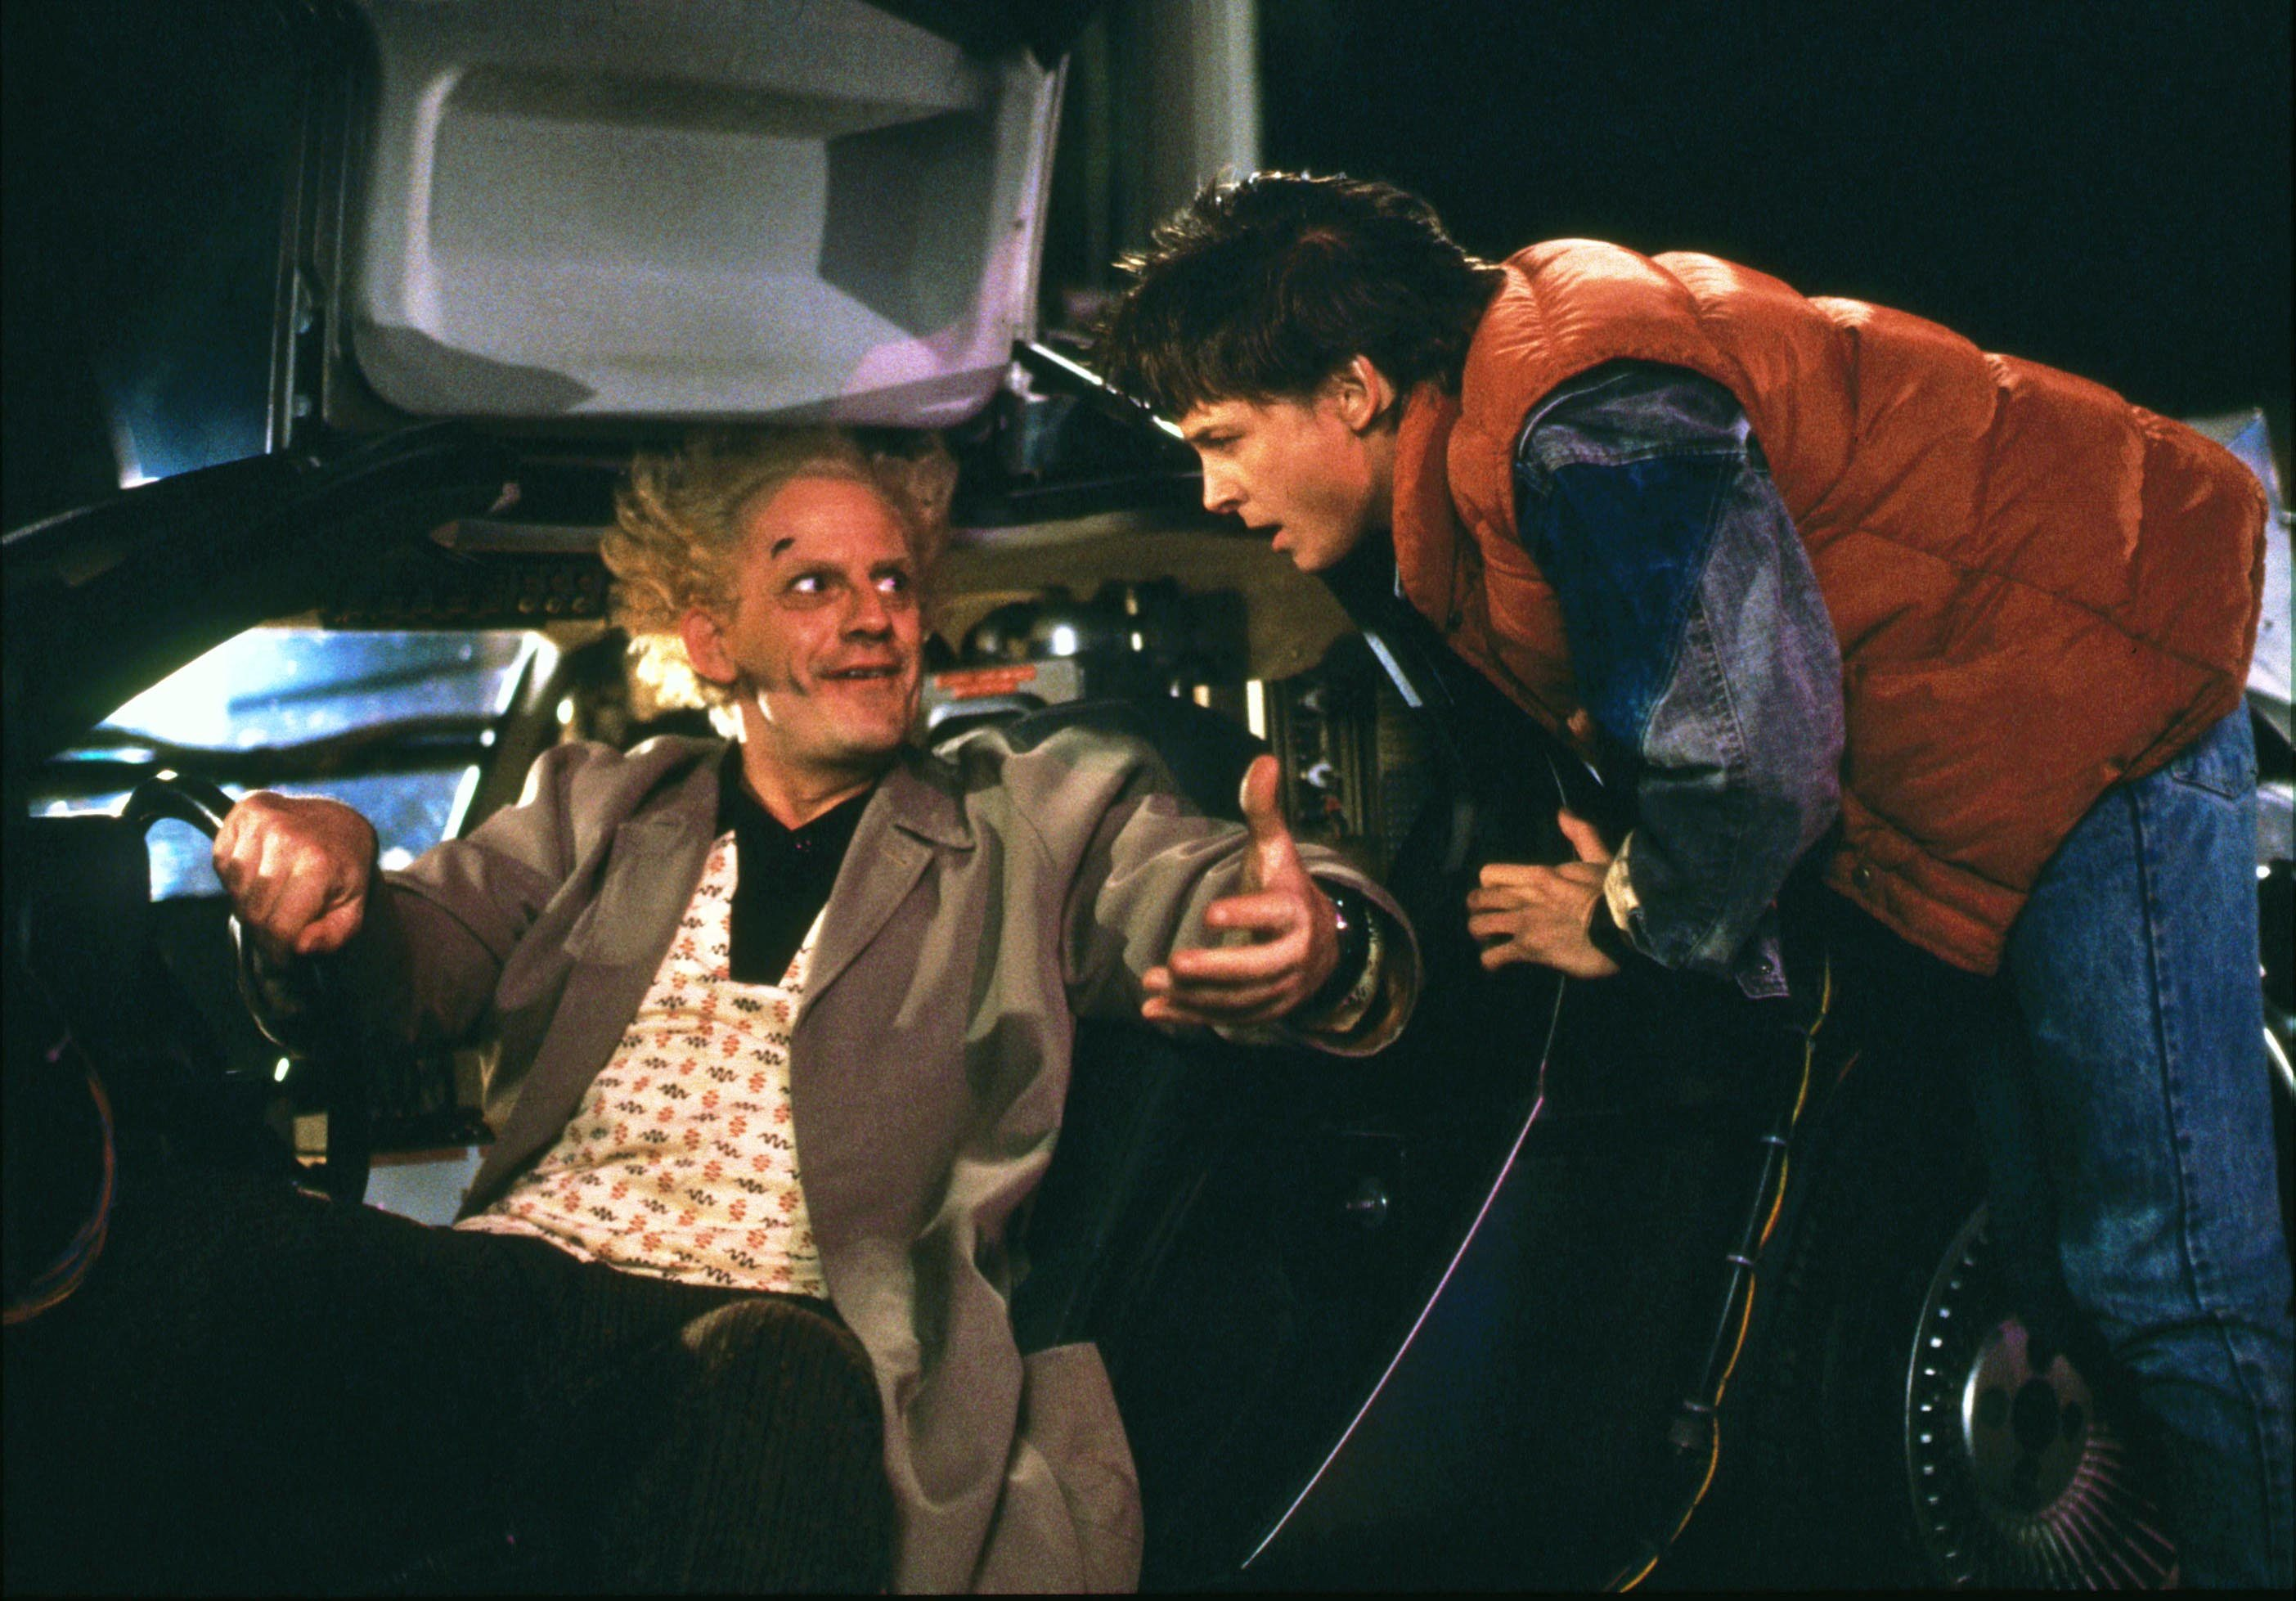 Editorial use only. No book cover usage. Mandatory Credit: Photo by Amblin Entertainment/Universal Pictures/Kobal/Shutterstock (5886092ab) Christopher Lloyd, Michael J. Fox Back To The Future - 1985 Director: Robert Zemeckis Amblin Entertainment/Universal Pictures USA Scene Still Scifi Retour vers le futur